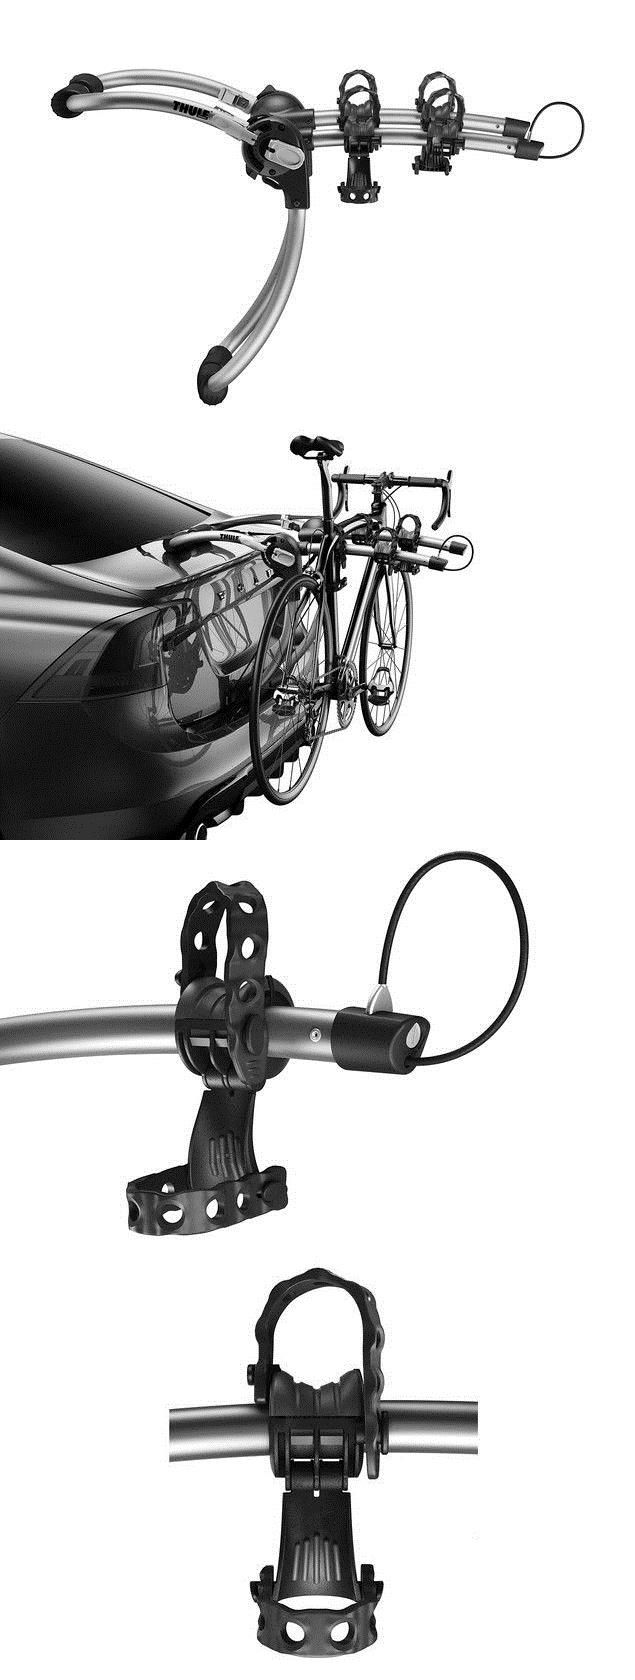 Carrier and Pannier Racks 177836: New! Sealed Thule 9009Xt Archway 2 Trunk Bike Bicycle Rack For 2-Bike Cargo Rack -> BUY IT NOW ONLY: $199.87 on eBay!